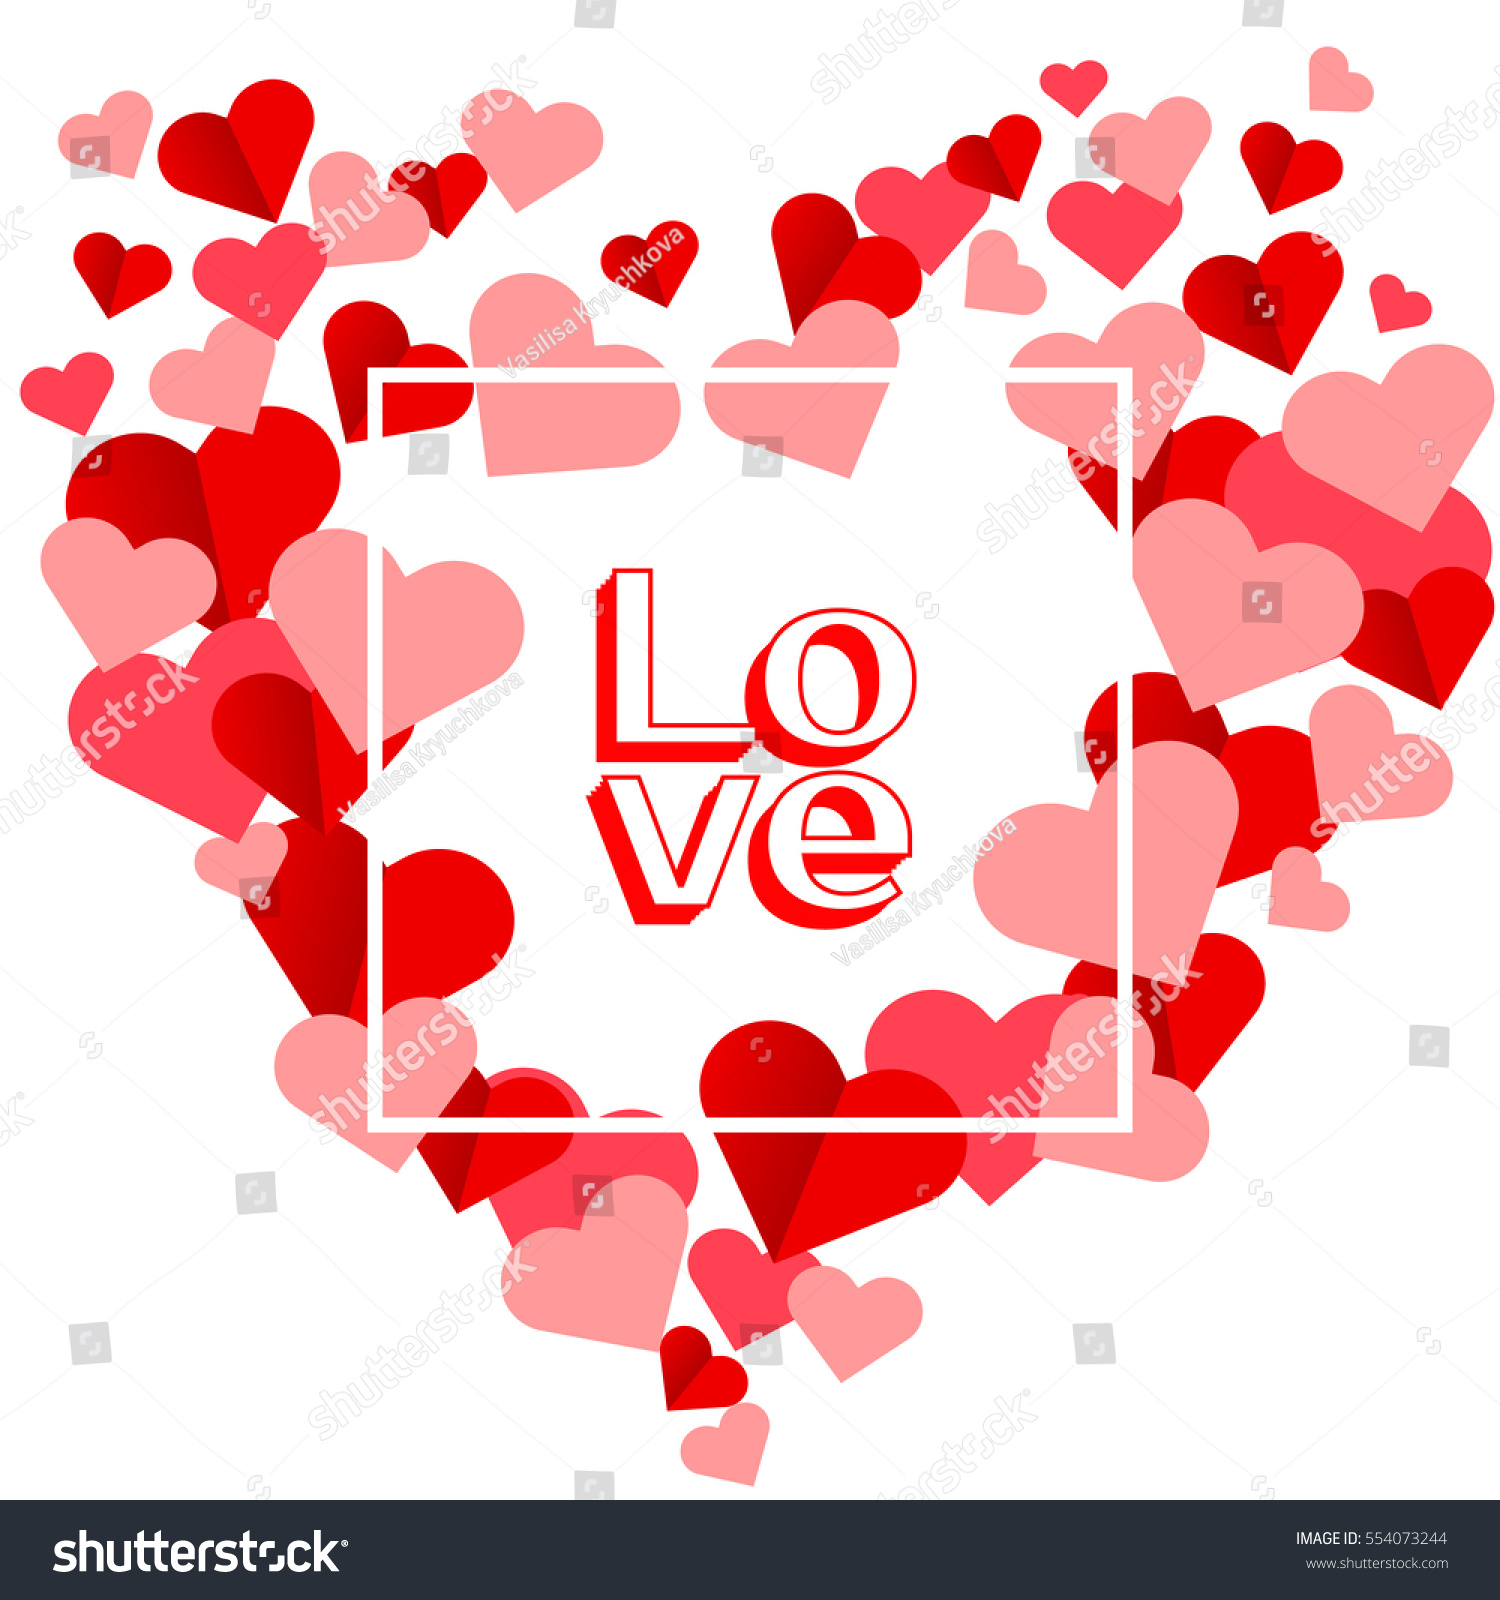 Happy valentines day greeting card valentine stock vector 554073244 happy valentines day greeting card the valentine day on a white background with red hearts kristyandbryce Images